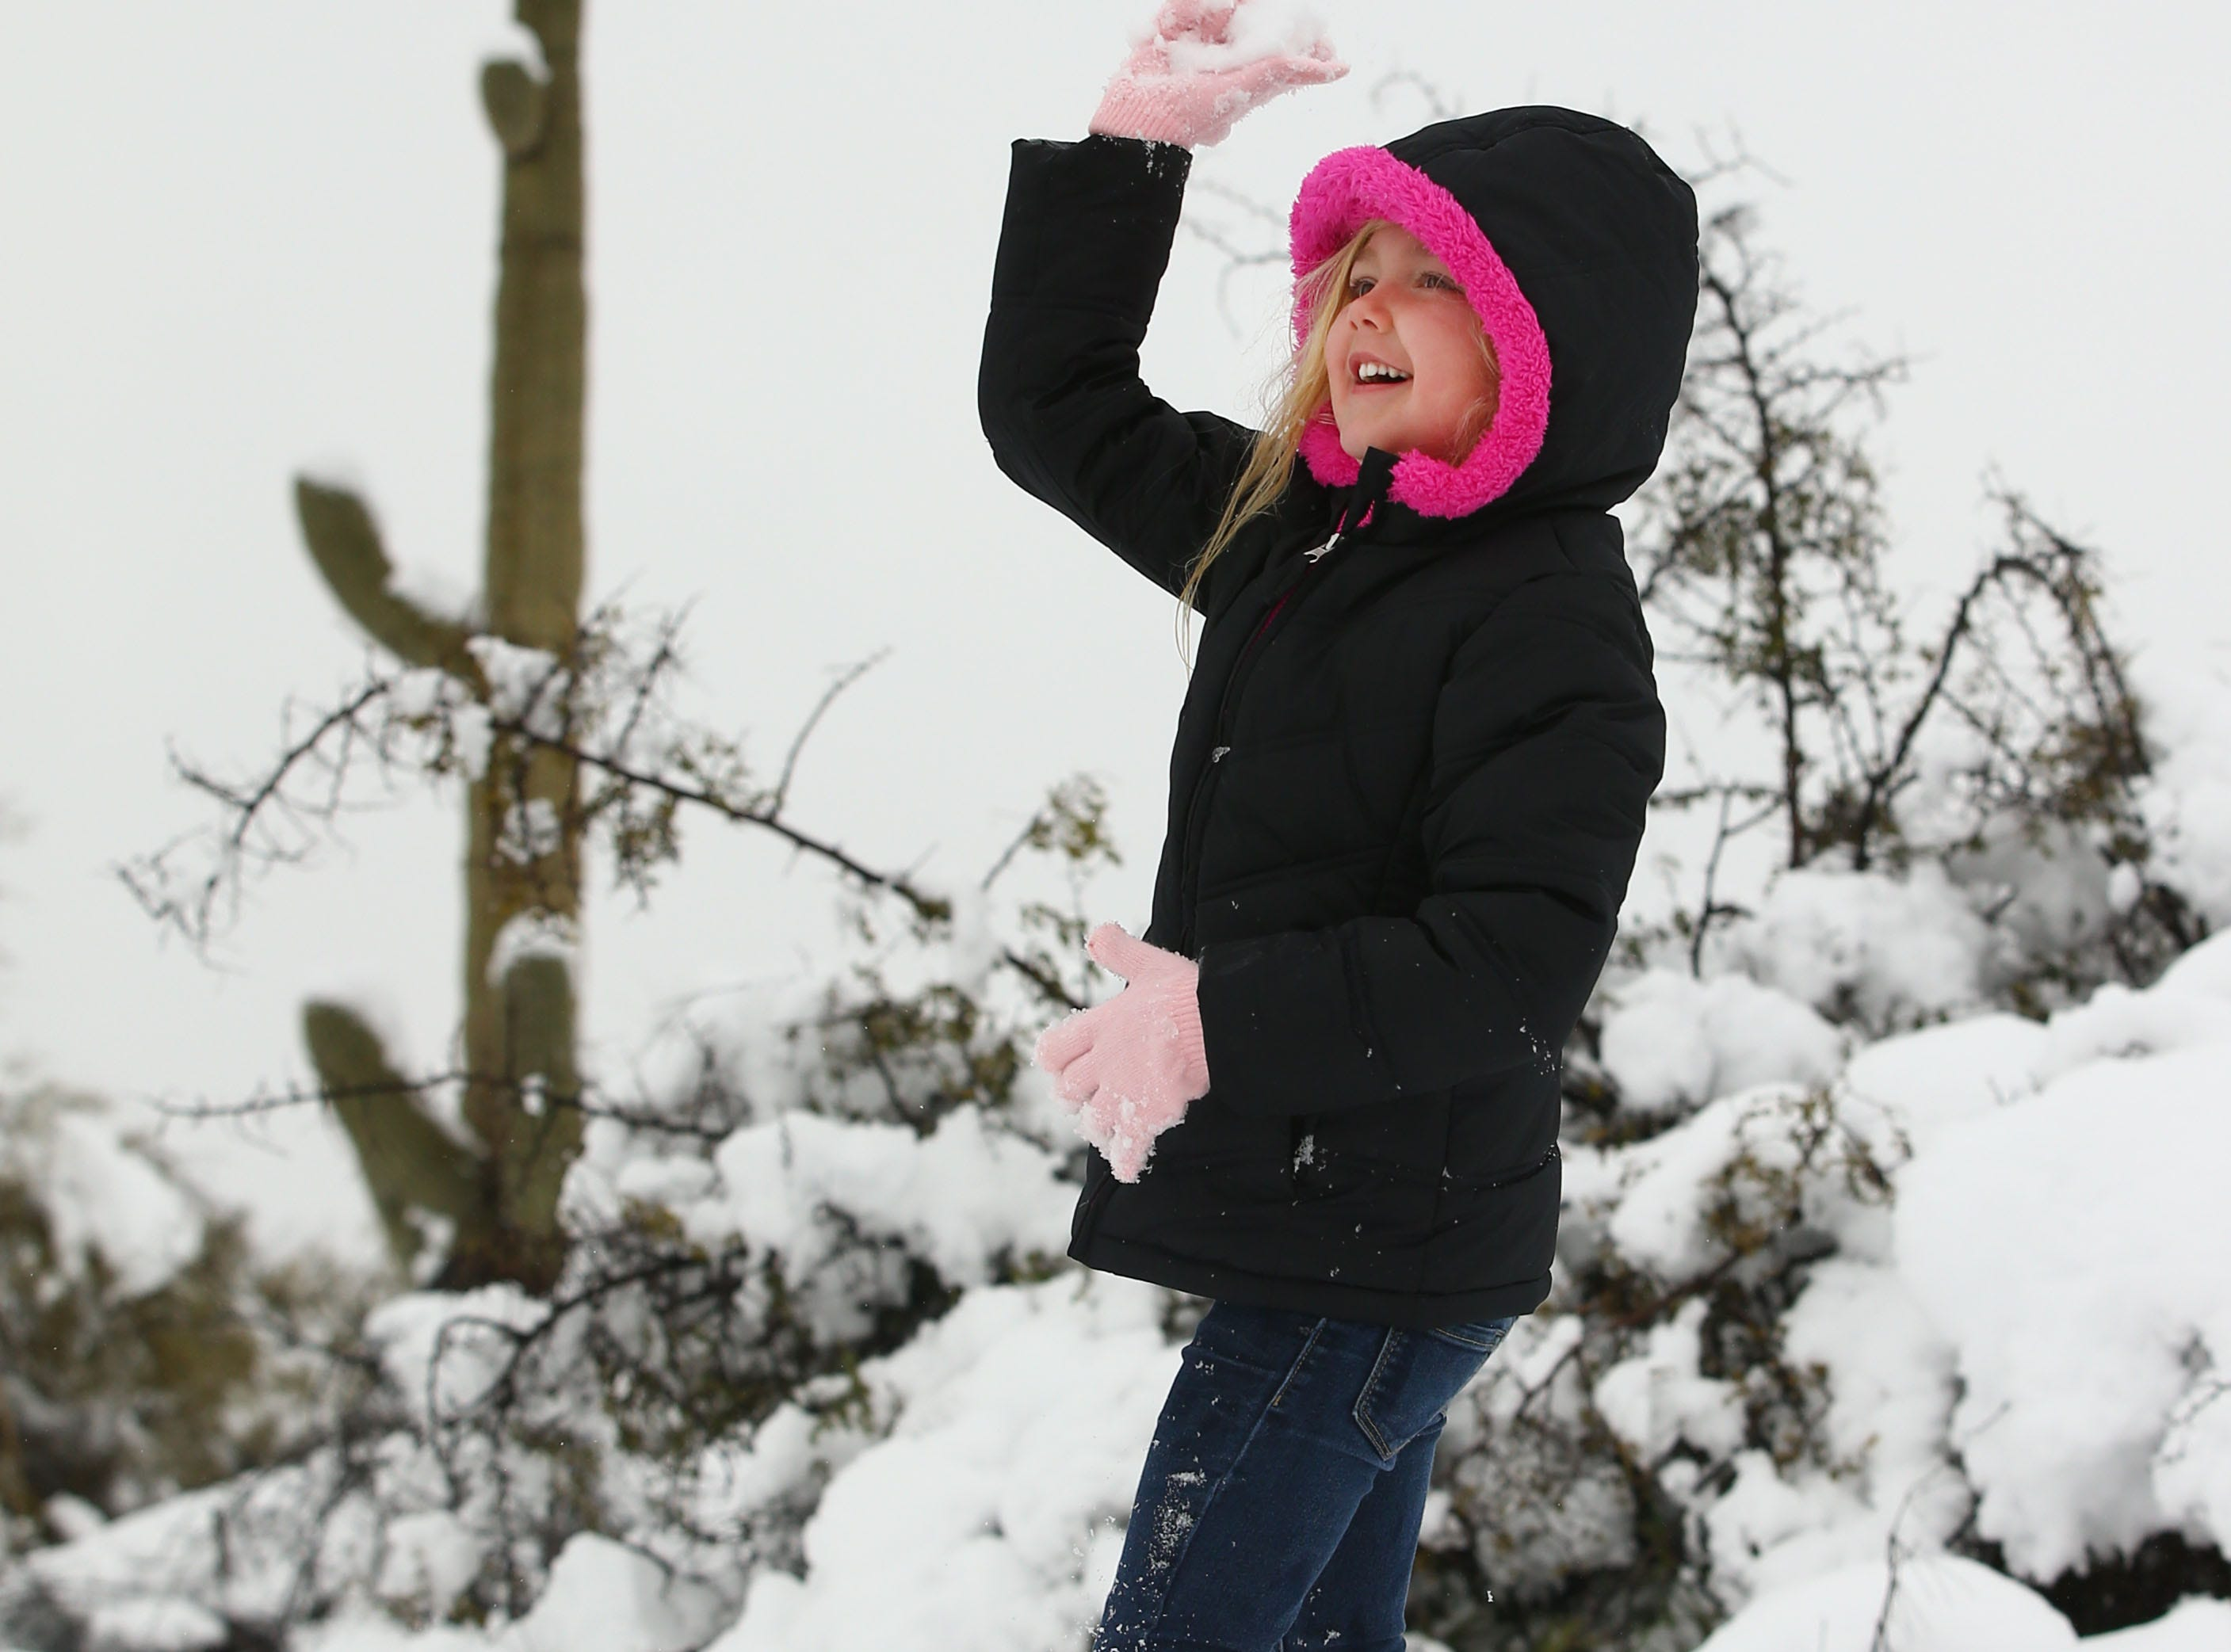 Ashlee Martin, age 5 has a snowball fight with a saguro cactus in the background after a winter storm brought six inches of snow on Feb. 22, 2019 in Scottsdale, Ariz.